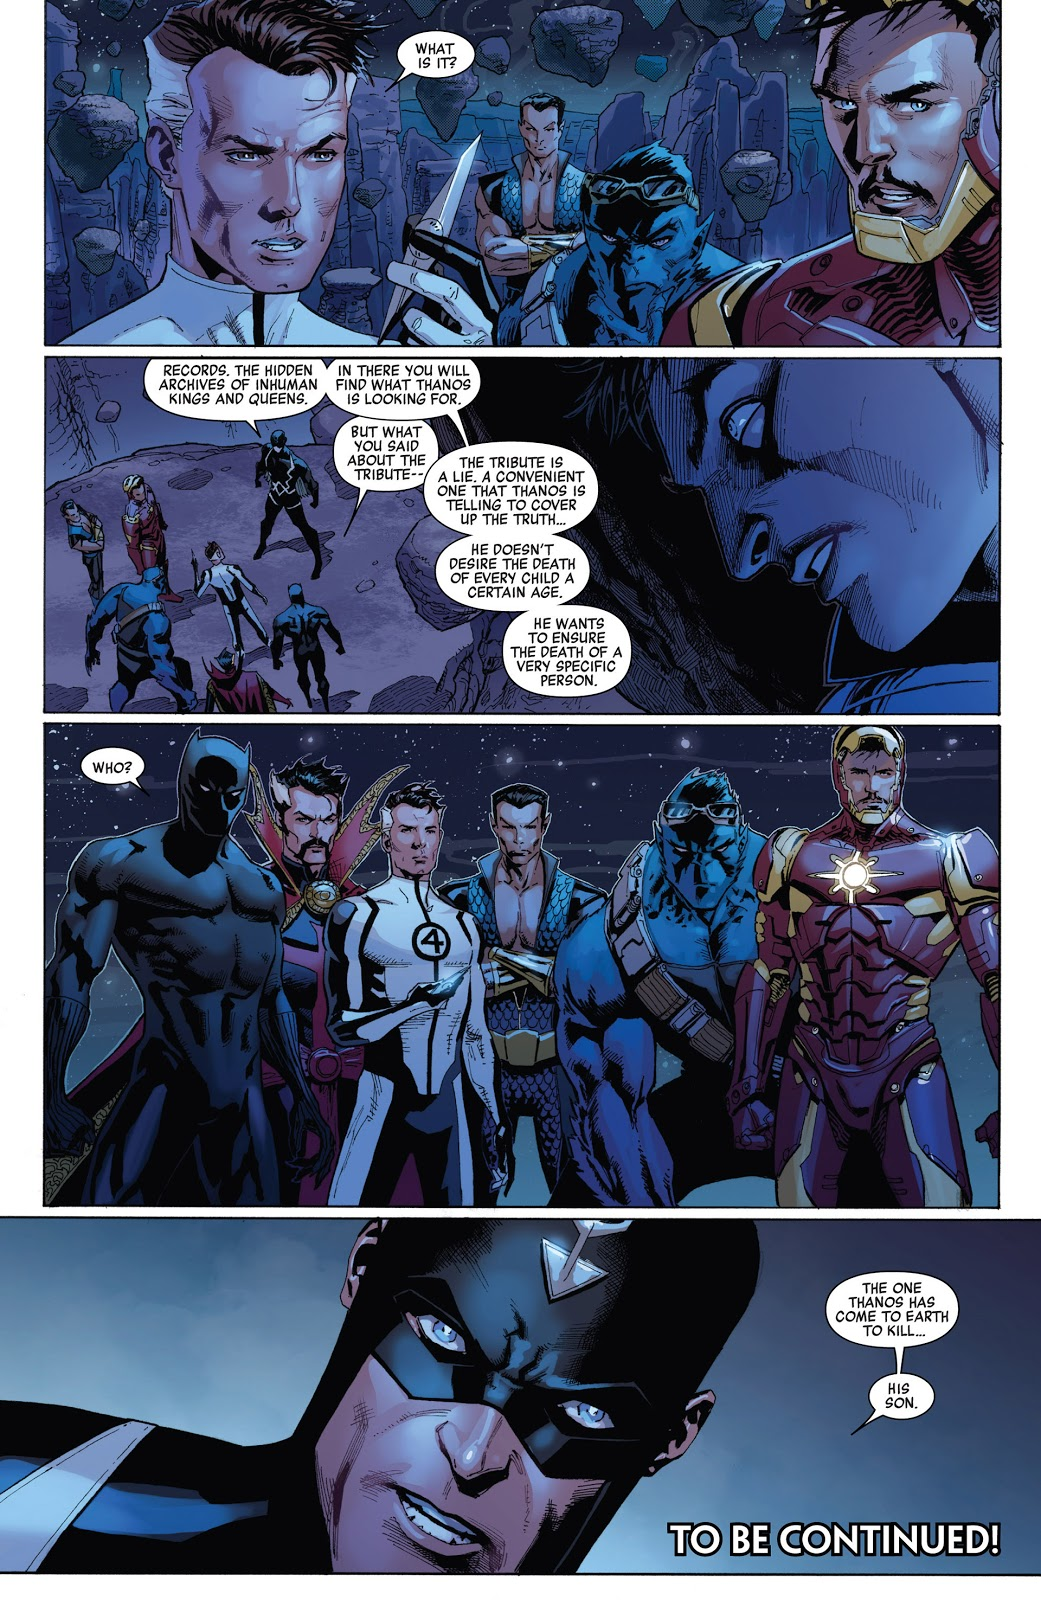 In 'Infinity' (2013) #3, Black Bolt reveals Thanos' true quest which is to kill his unknown Inhuman son.